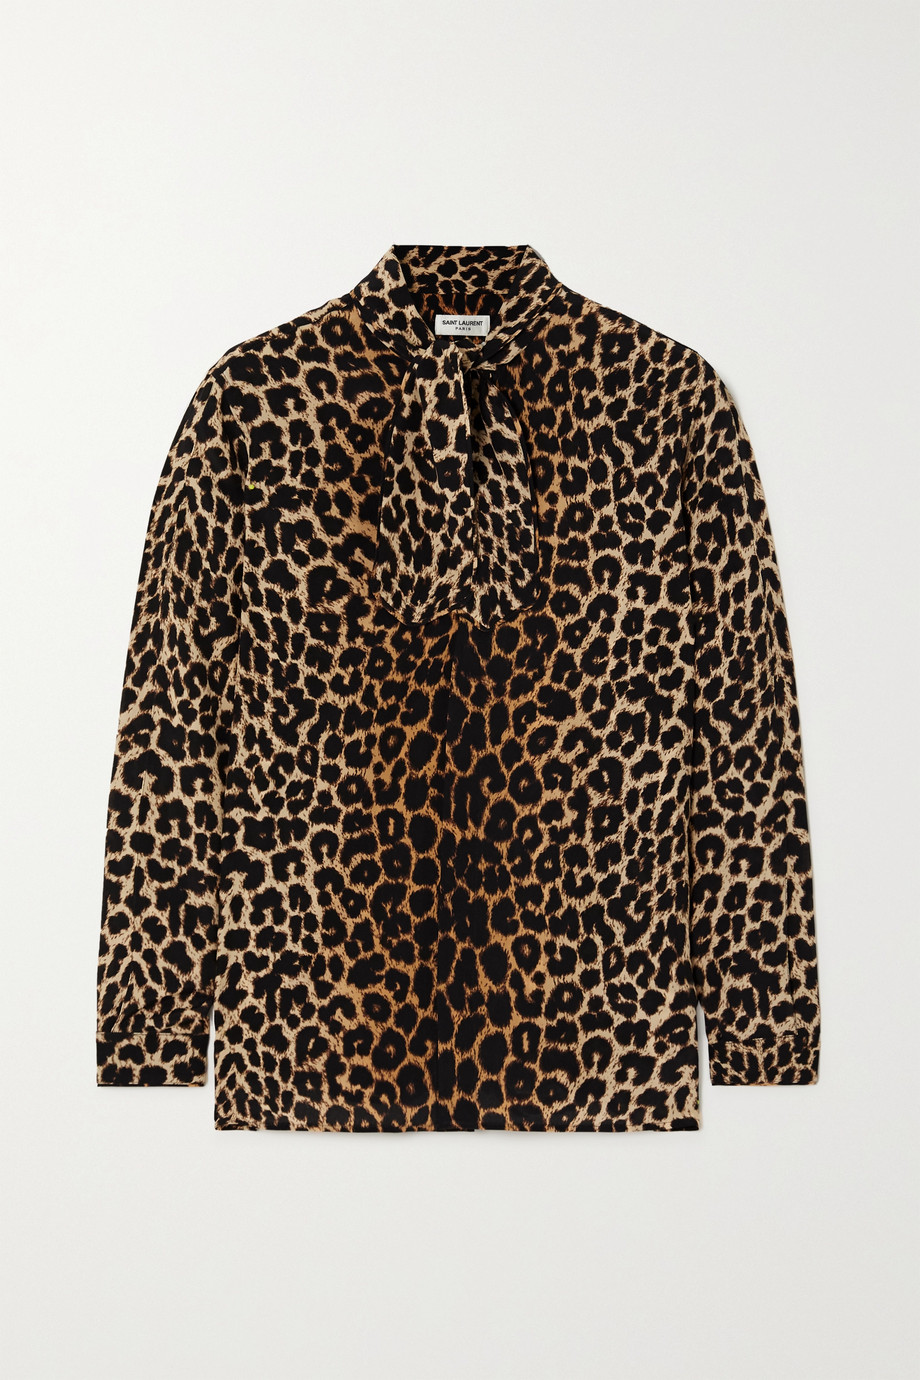 SAINT LAURENT Pussy-bow leopard-print silk crepe de chine shirt